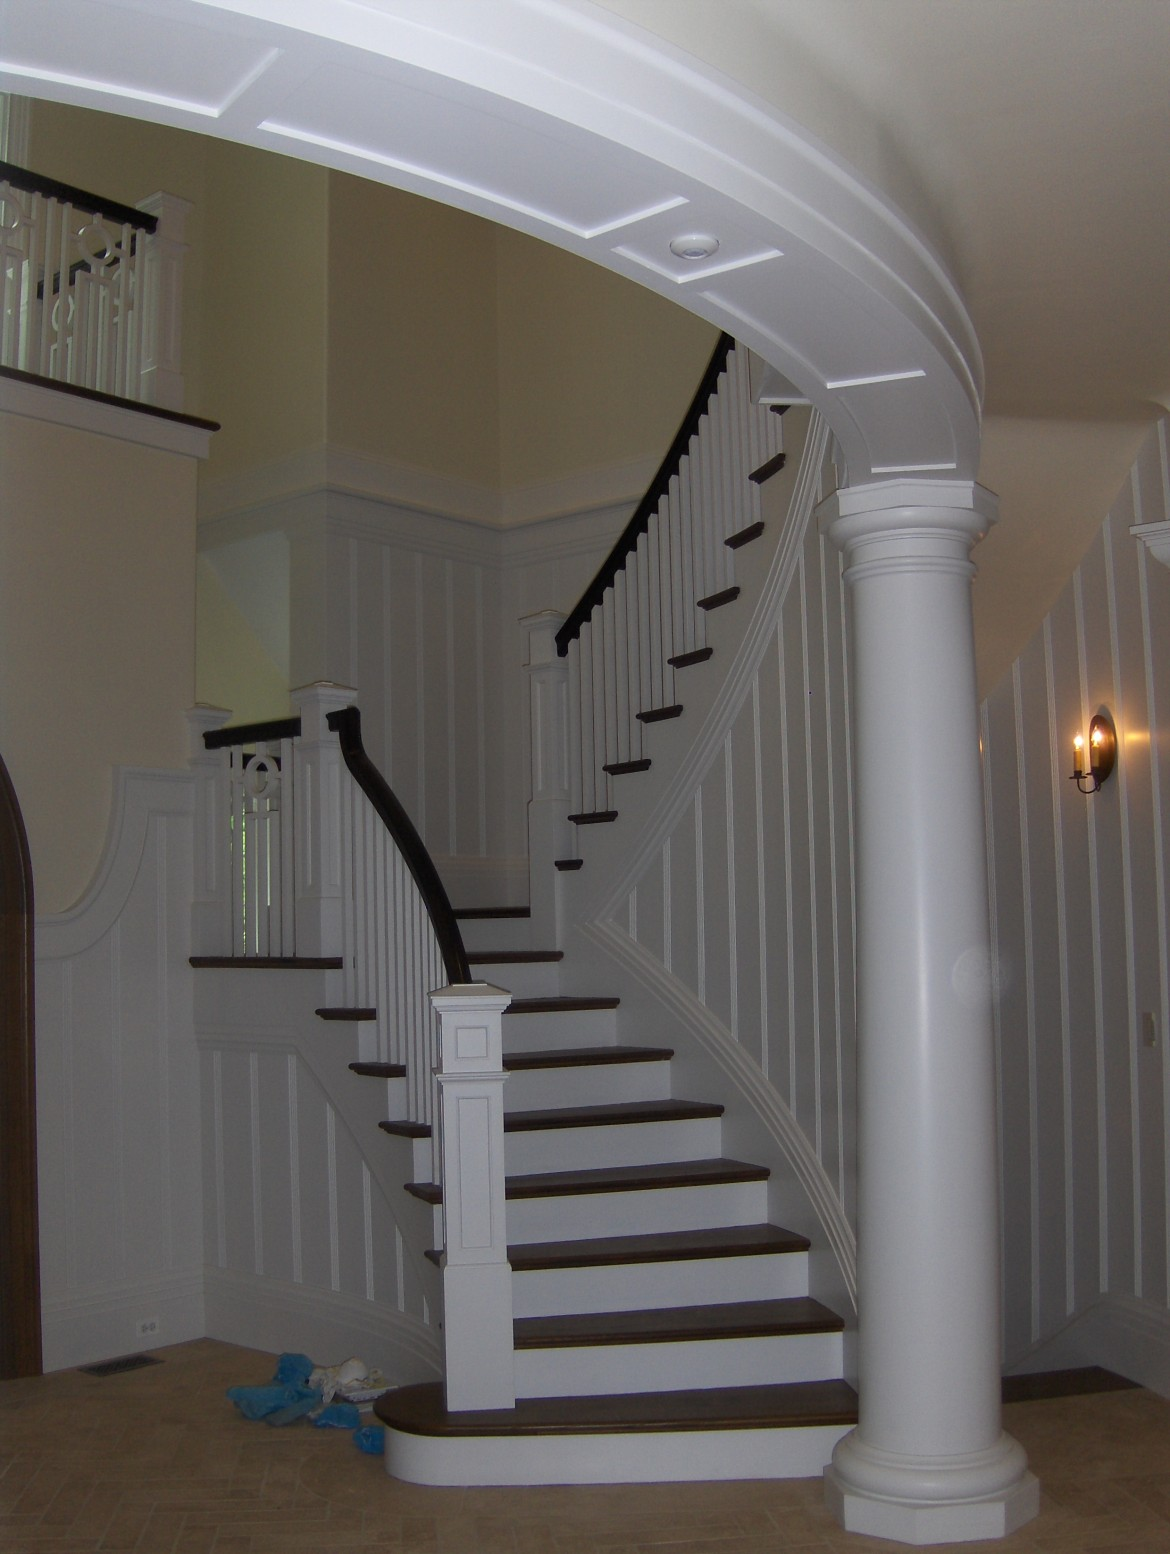 Architectural Stairway and Column